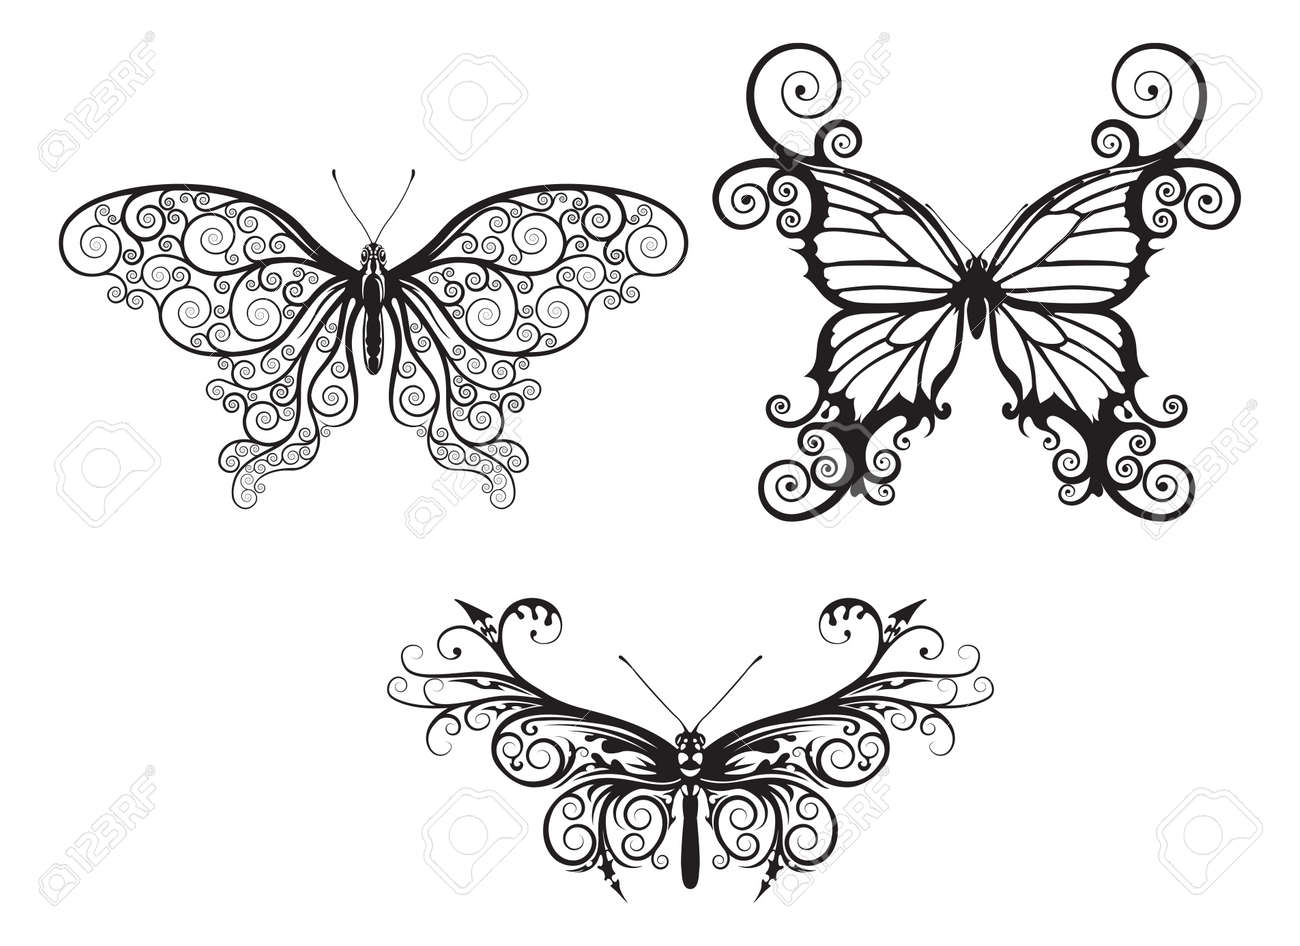 Illustrations of stylised abstract butterflies with patterns and swirls making up wings Stock Vector - 10954768